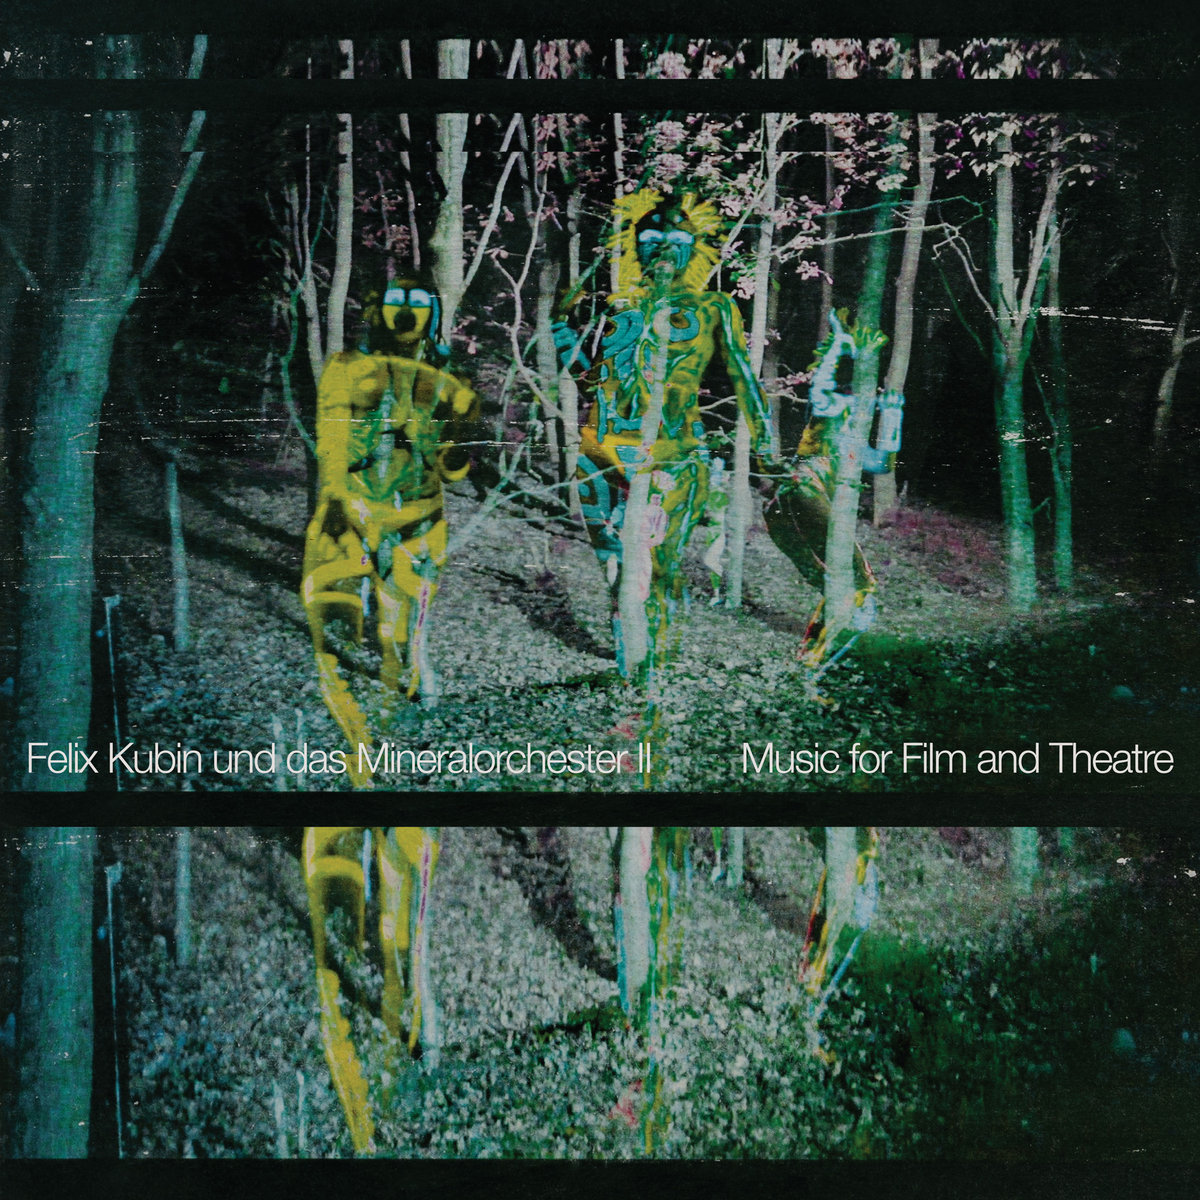 MUSIC FOR FILM AND THEATRE II